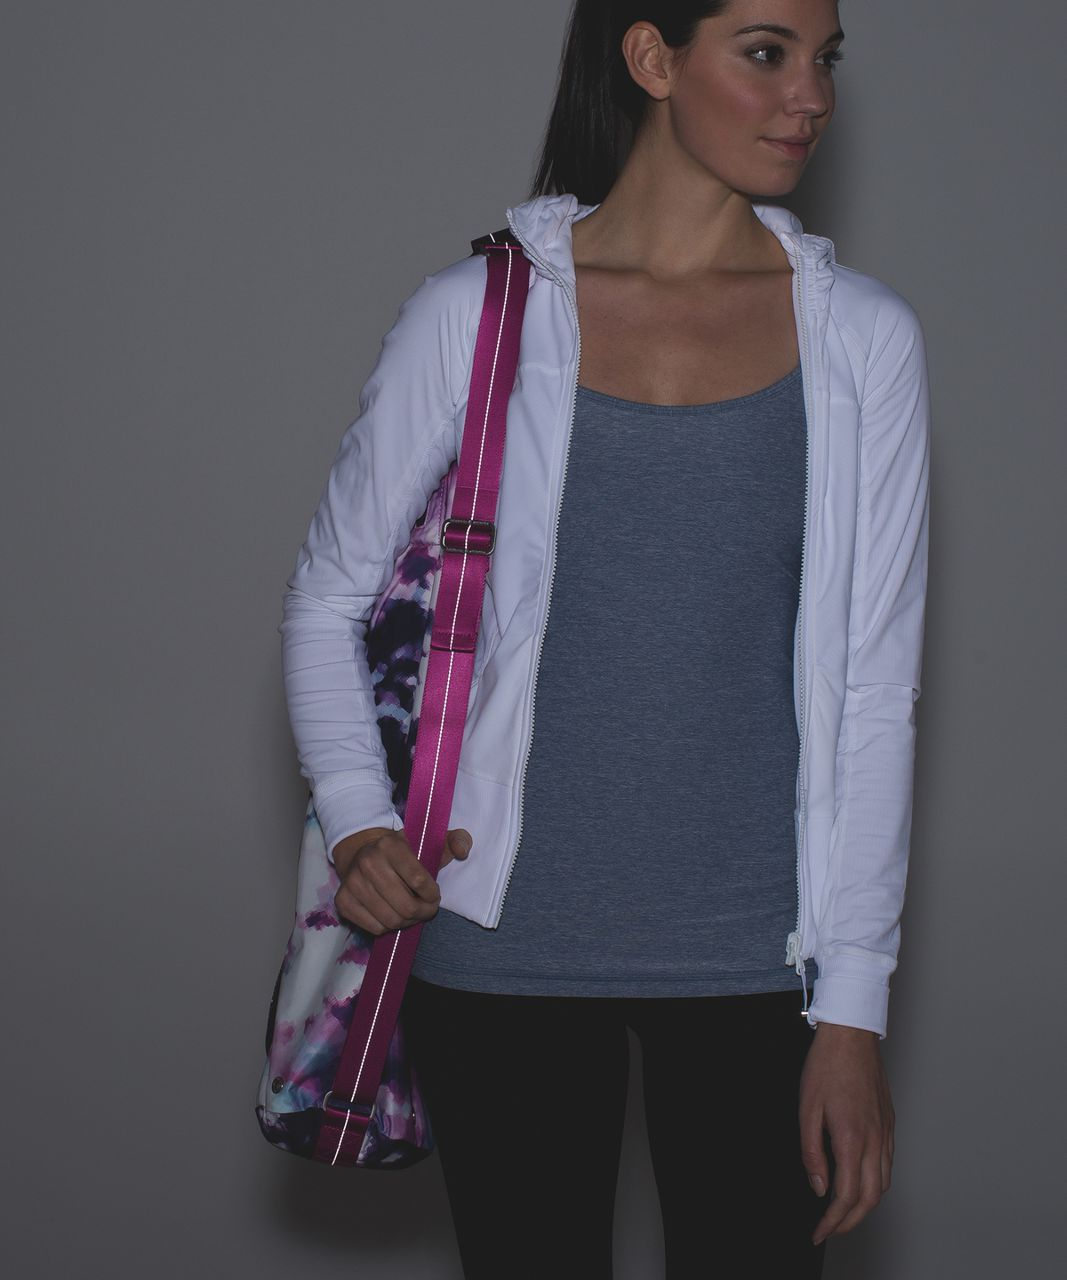 Lululemon Drishti Yoga Tote - Blooming Pixie Multi